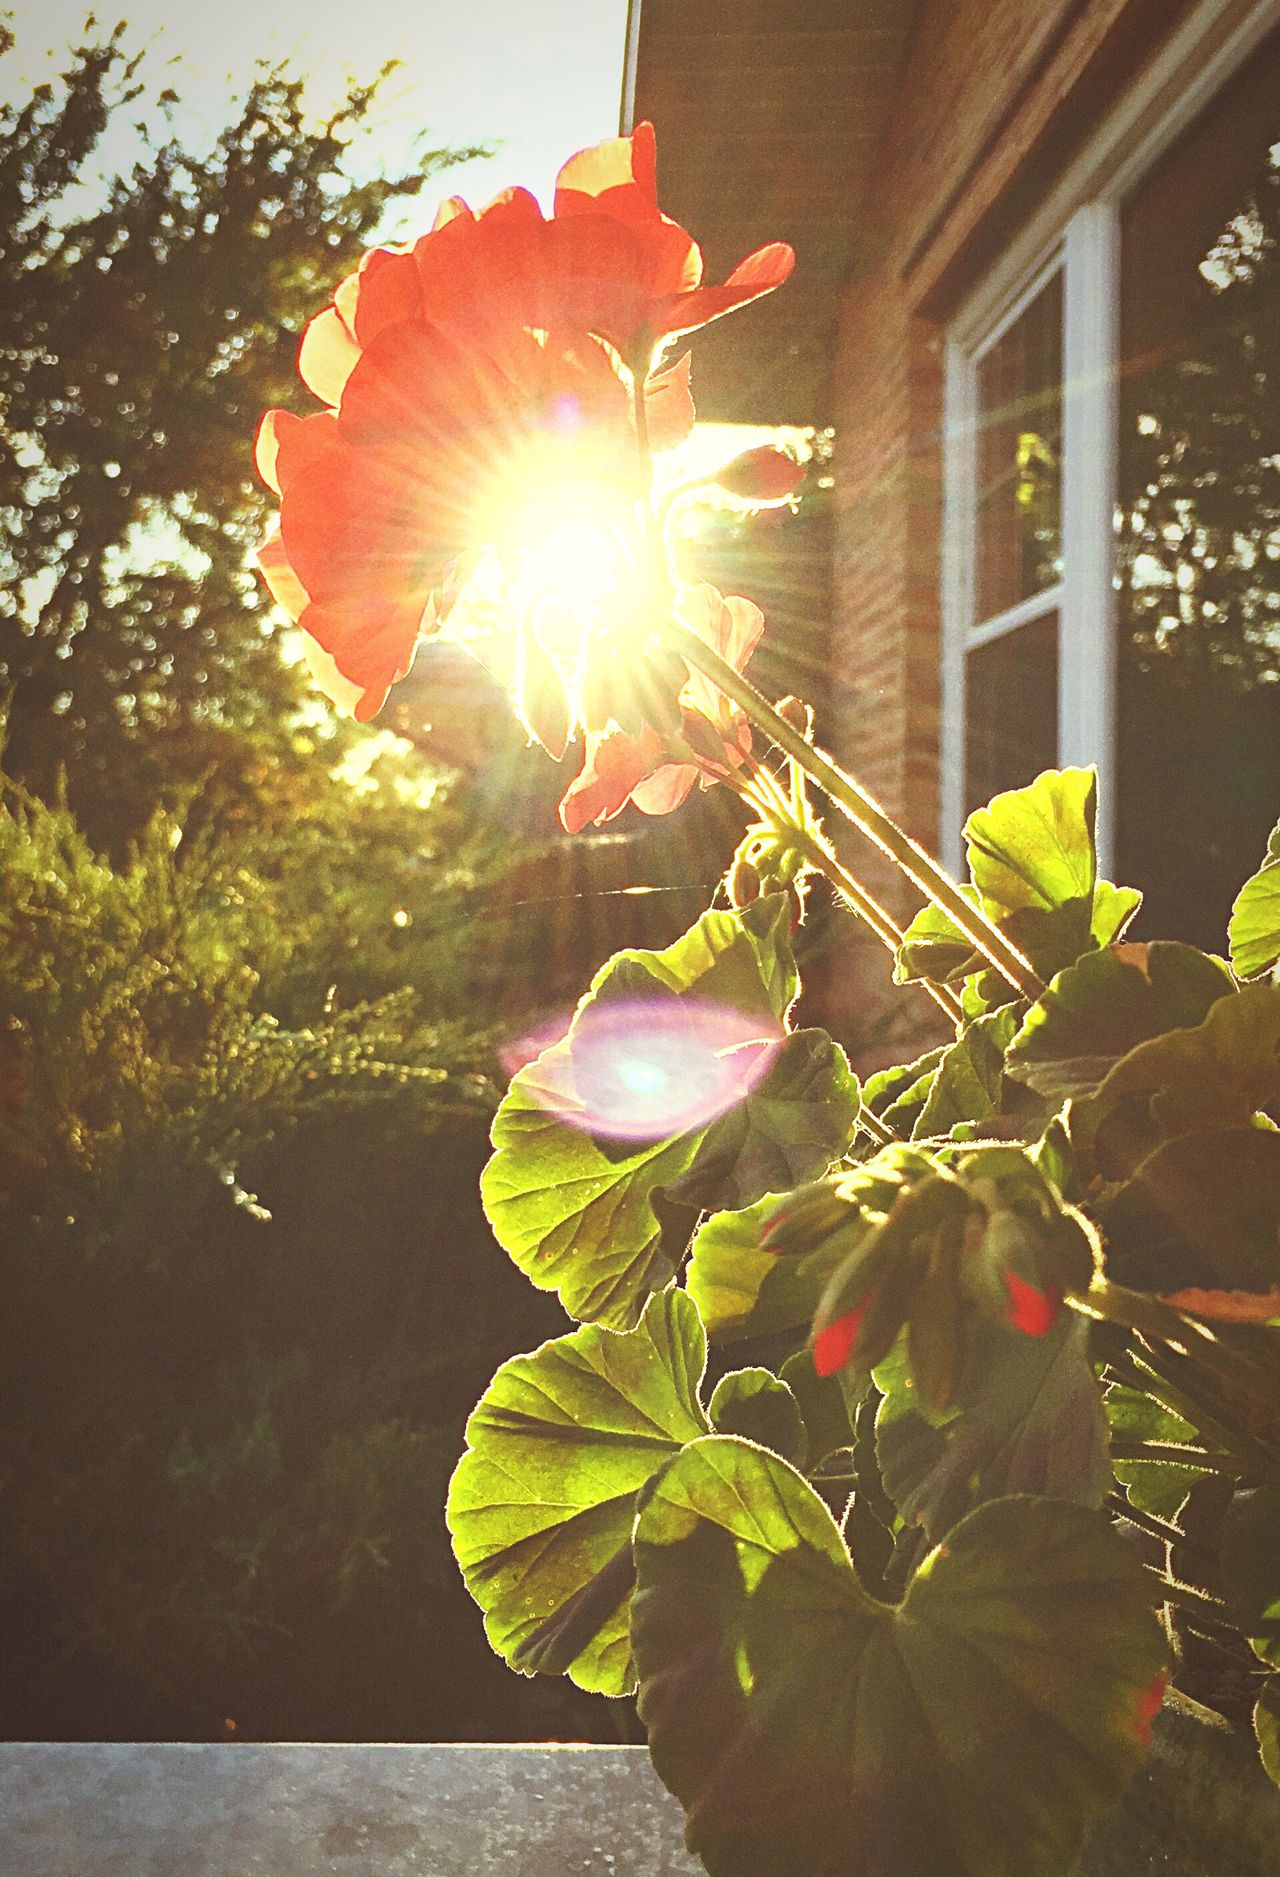 Different angle from before of the dan flower Flower Sunlight Growth Building Exterior Sunbeam Built Structure Architecture Freshness Leaf Close-up Front Or Back Yard Focus On Foreground Fragility Petal Plant Lens Flare Back Lit Springtime Sun Green Color